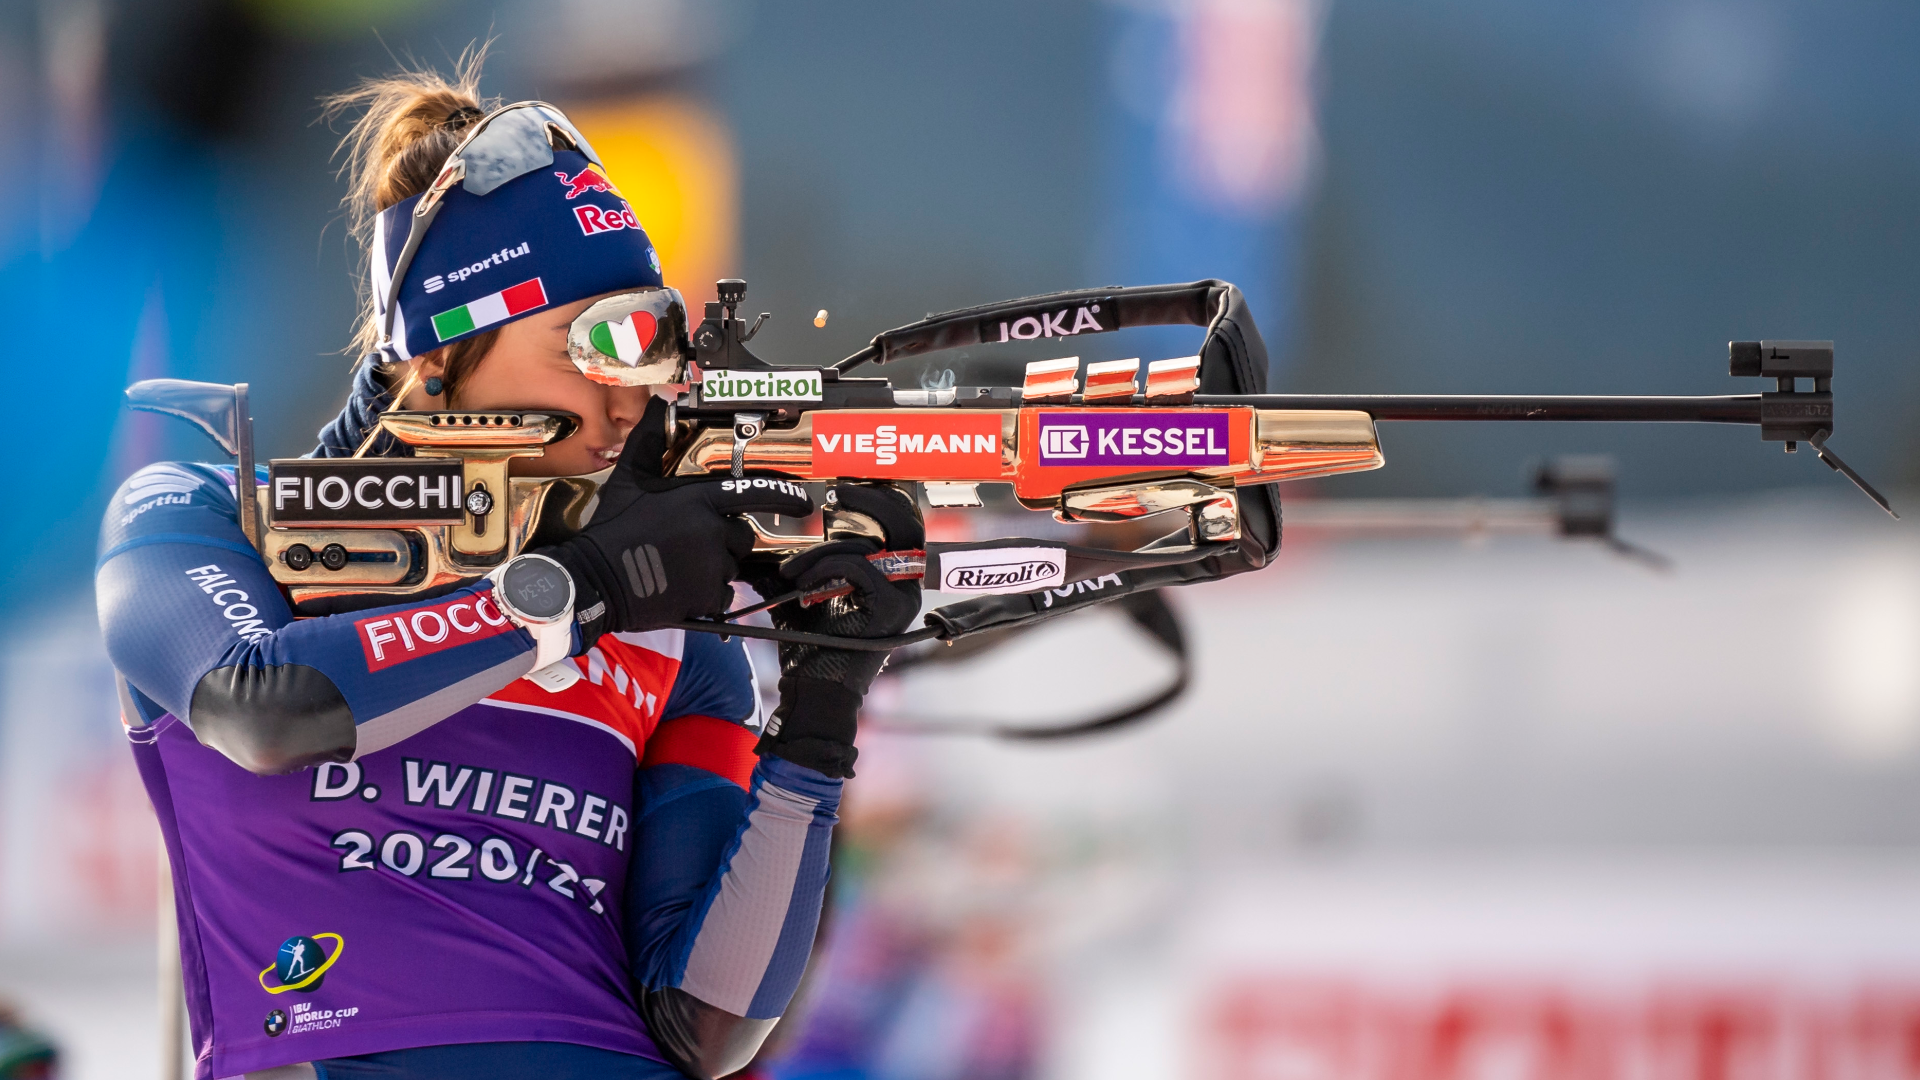 BIATHLON. ANOTHER MEDAL FOR DOROTHEA WIERER IN HOCHFILZEN.